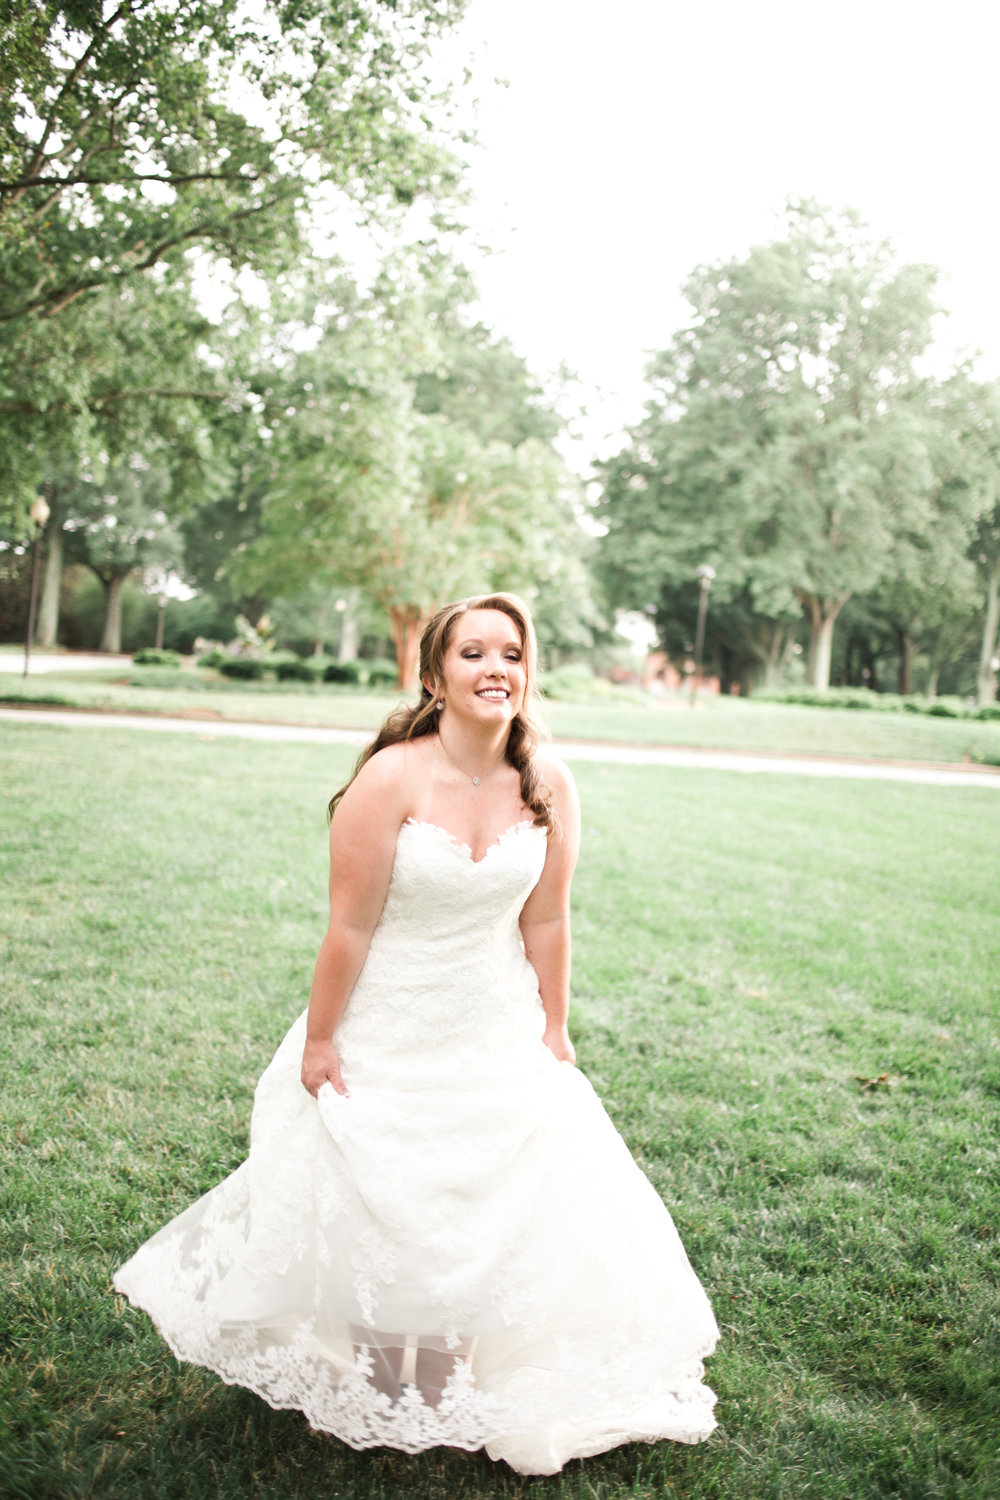 gabbie_bridal_poured_out_photography-22.jpg